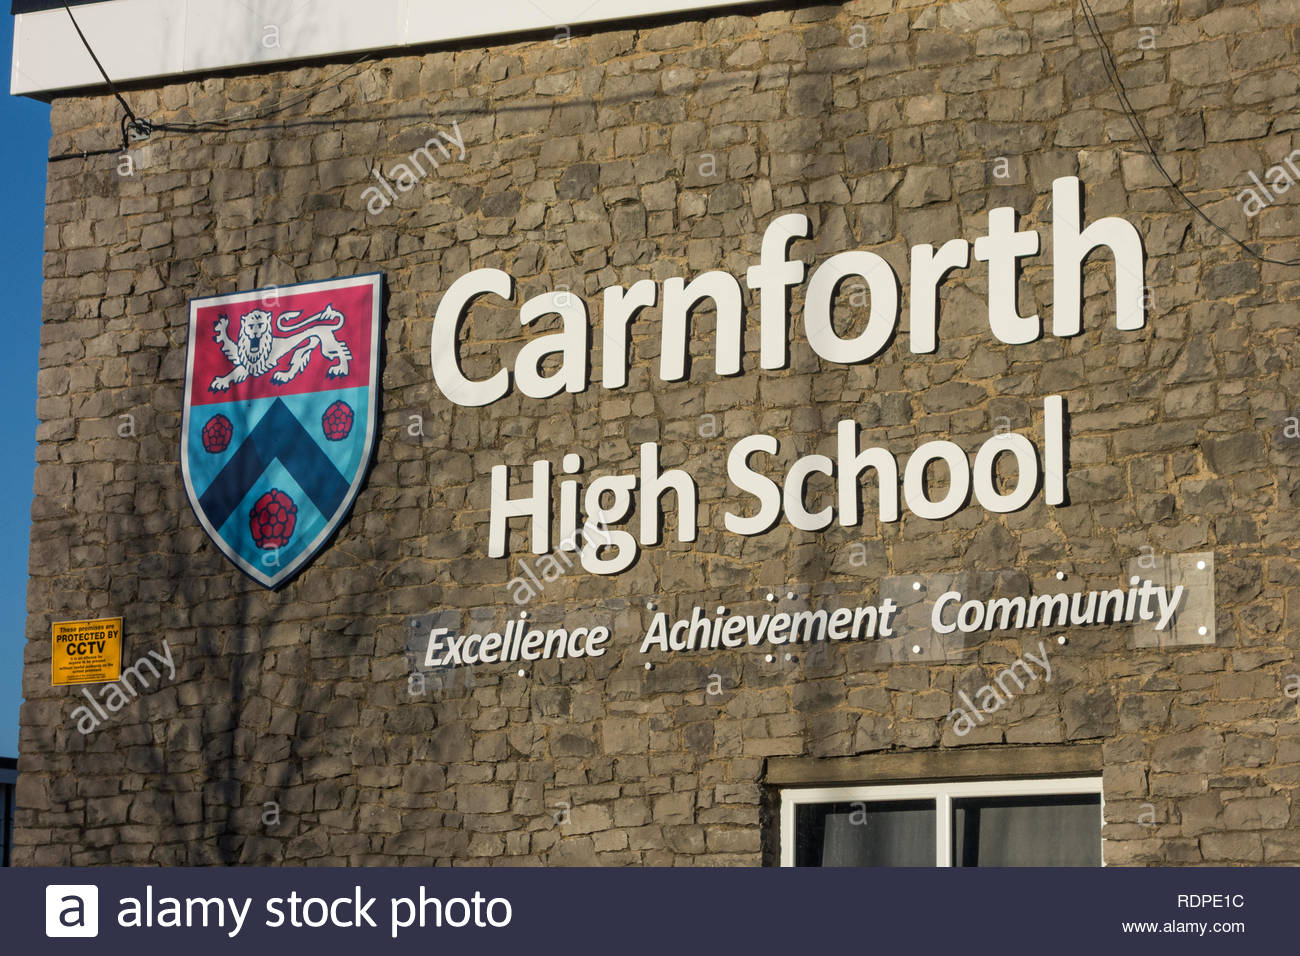 Sign for Carnforth High School, a Secondary Education school in Carnforth, Lancashire, England, UK - Stock Image